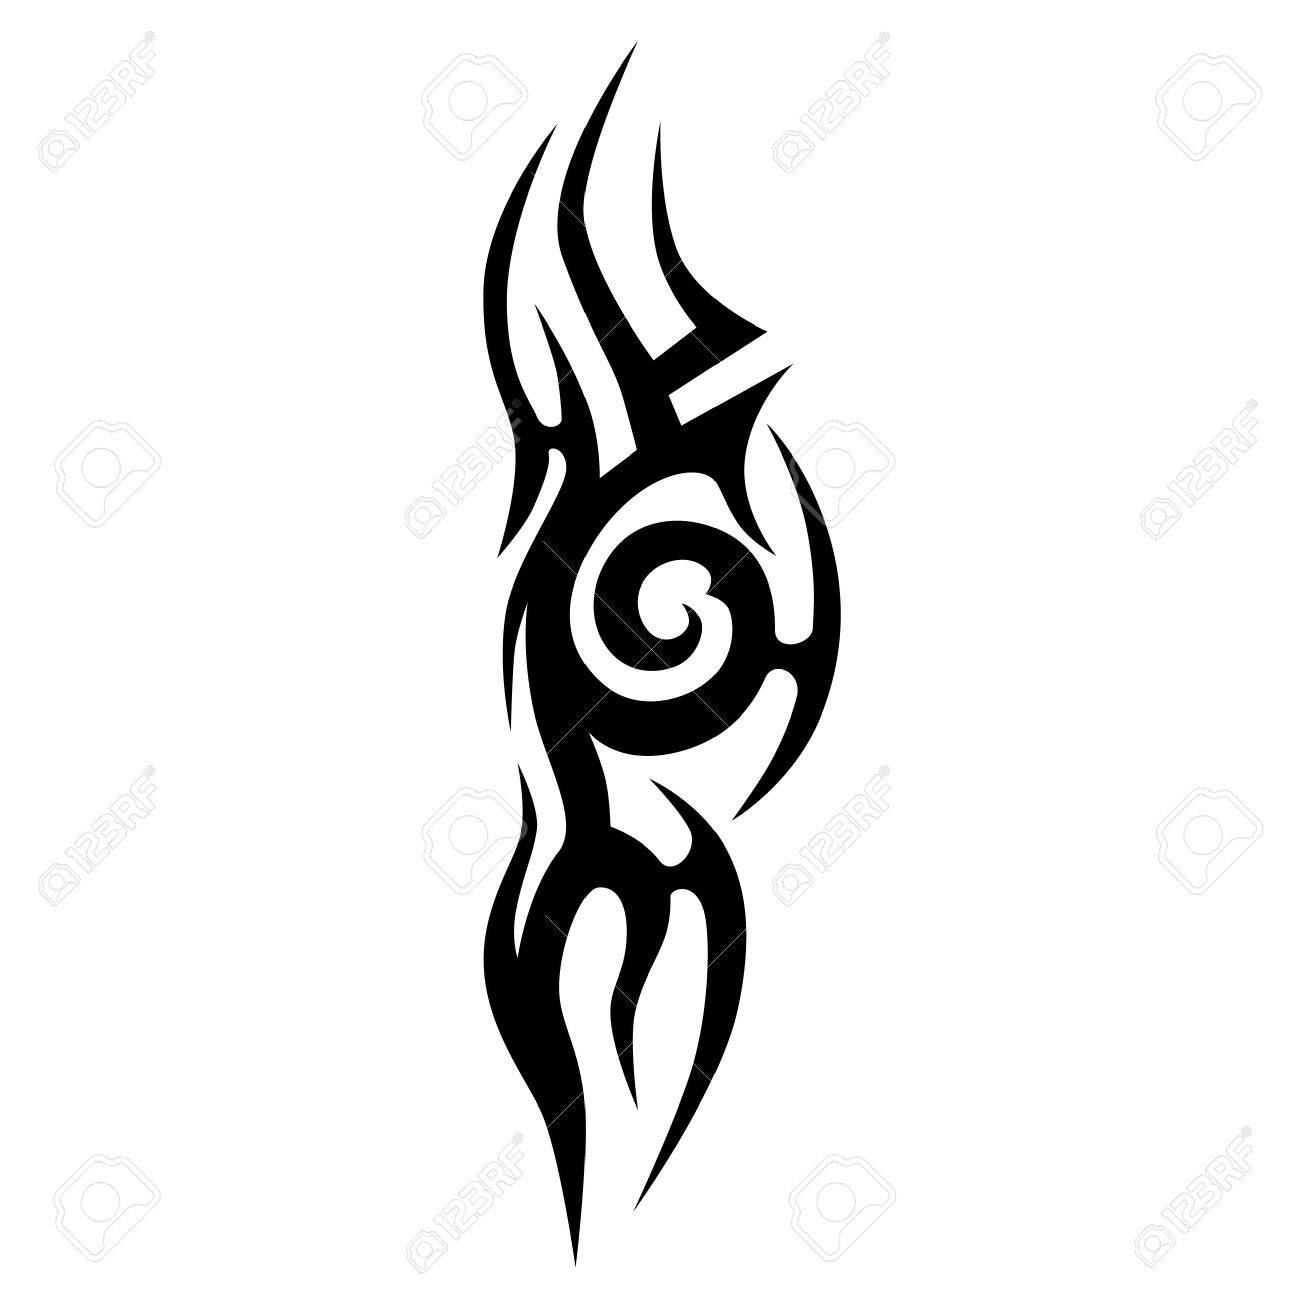 scroll tattoo tribal vector designs tribal tattoos art tribal rh 123rf com tribal vectoriel tribal vector eps